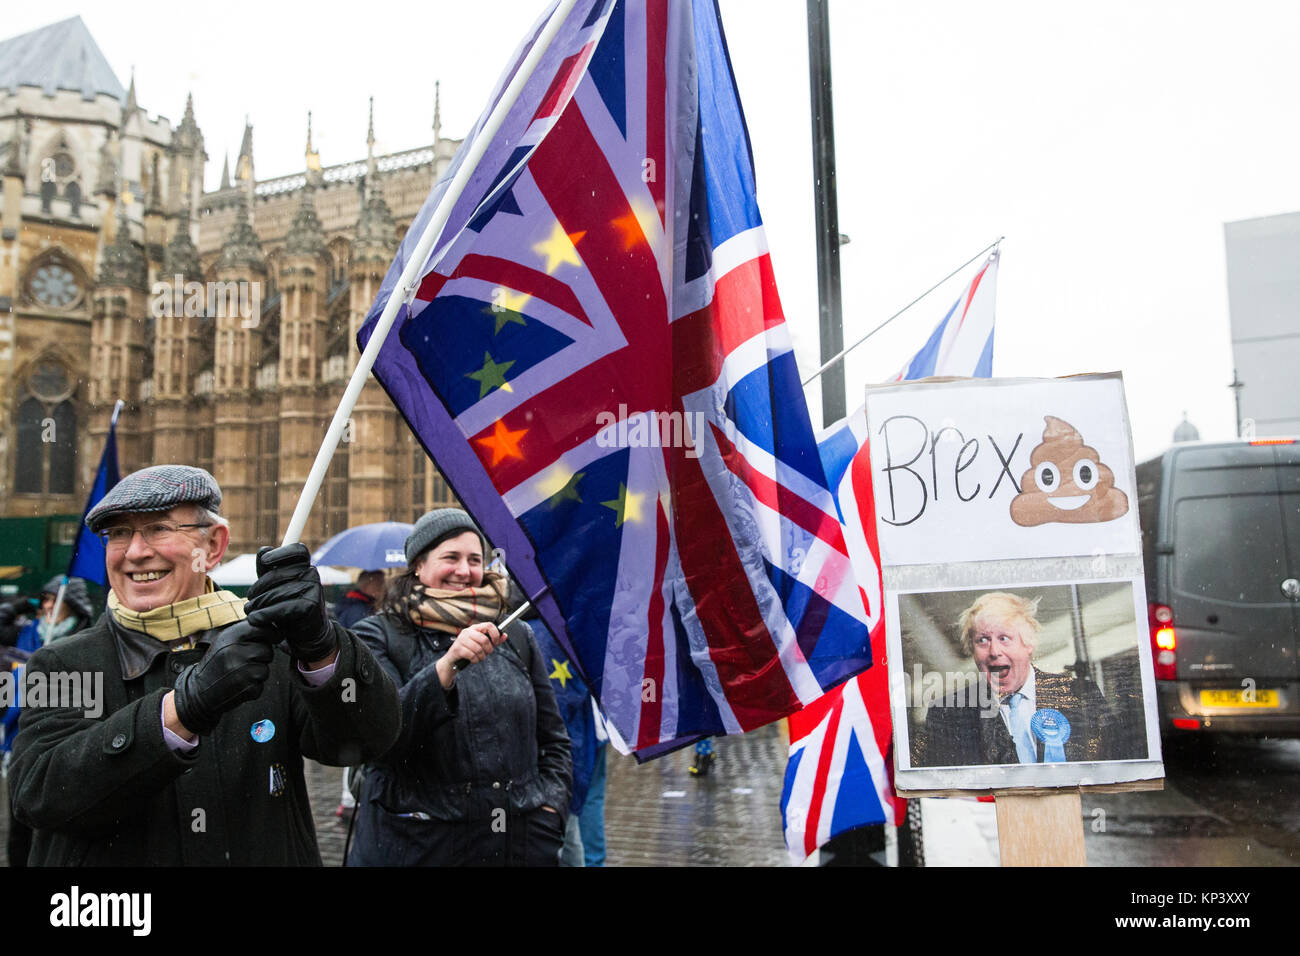 London, UK. 12th December, 2017. Anti-Brexit protesters wave European Union flags and Union Jacks outside Parliament. - Stock Image